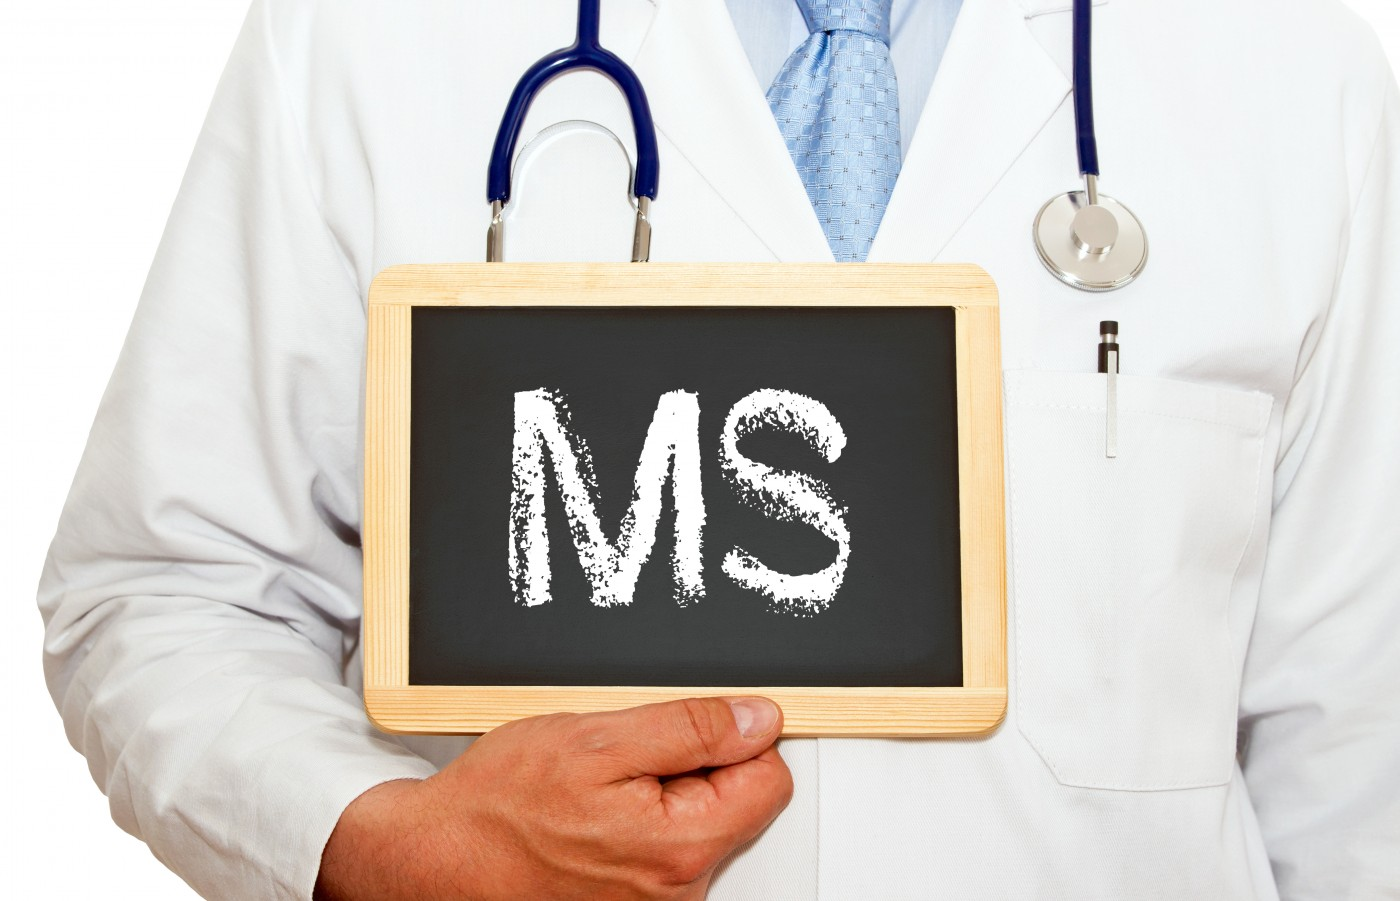 Vaccinex Releases Pre-clinical Data on Experimental Multiple Sclerosis Therapy